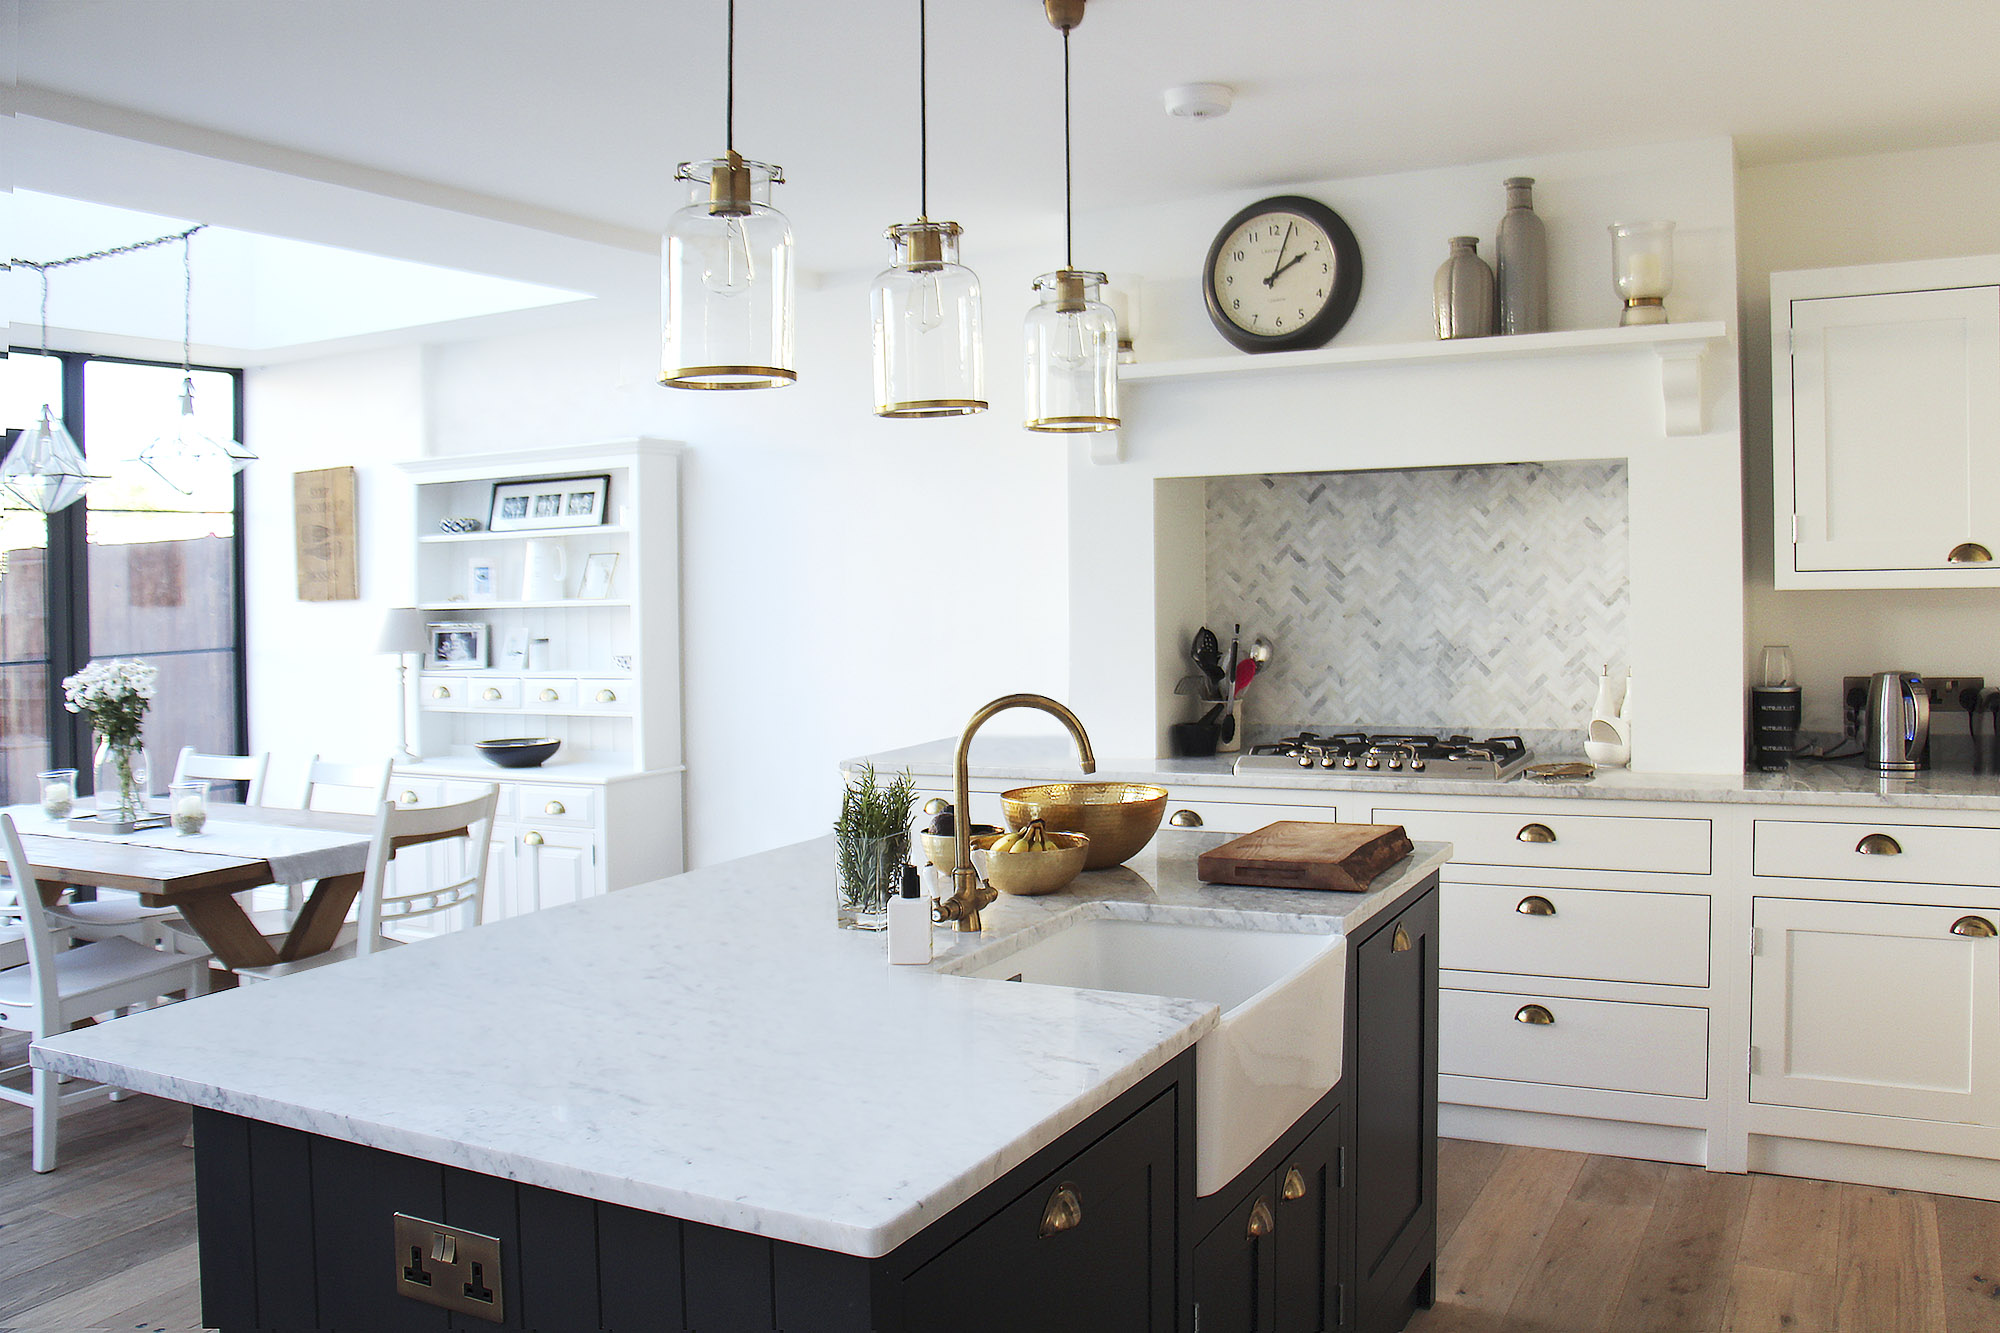 - marchini-architecture.com, - kitchen with marble, - Streatham